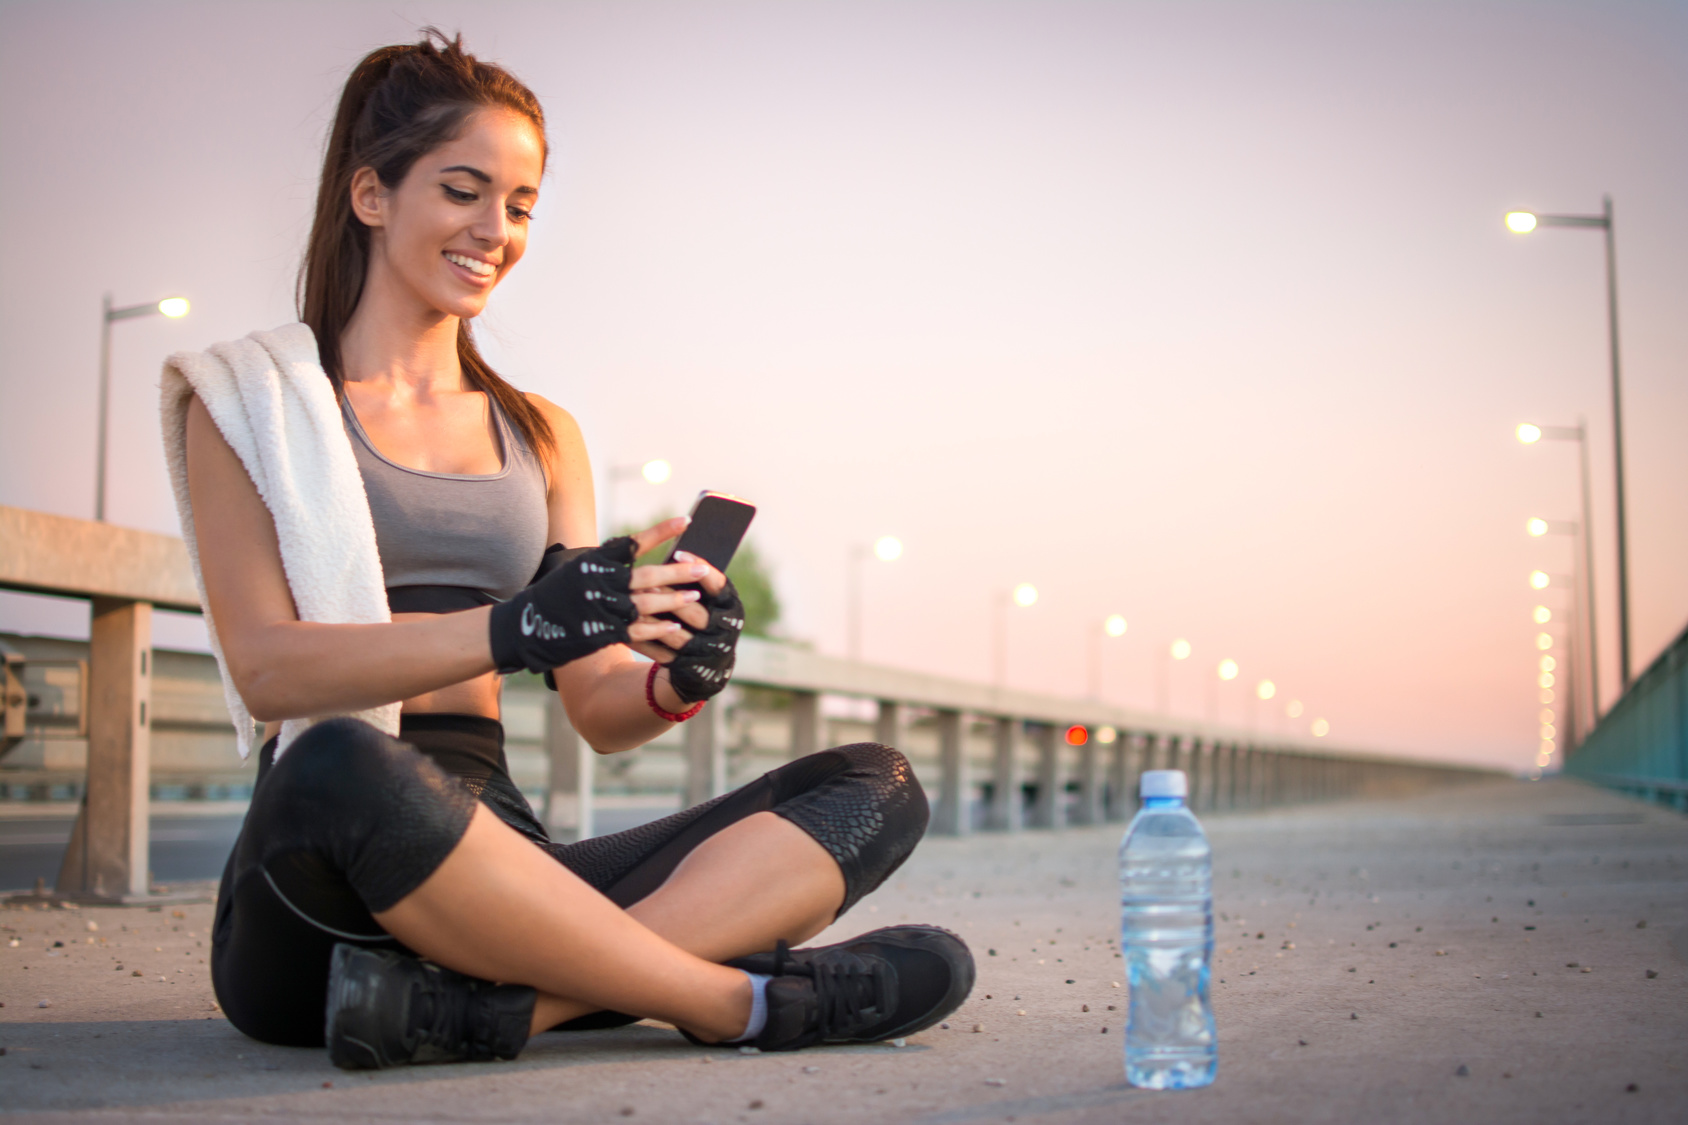 Beautiful Smiling Sportswoman Taking A Break After Workout And Using Phone Outdoors.